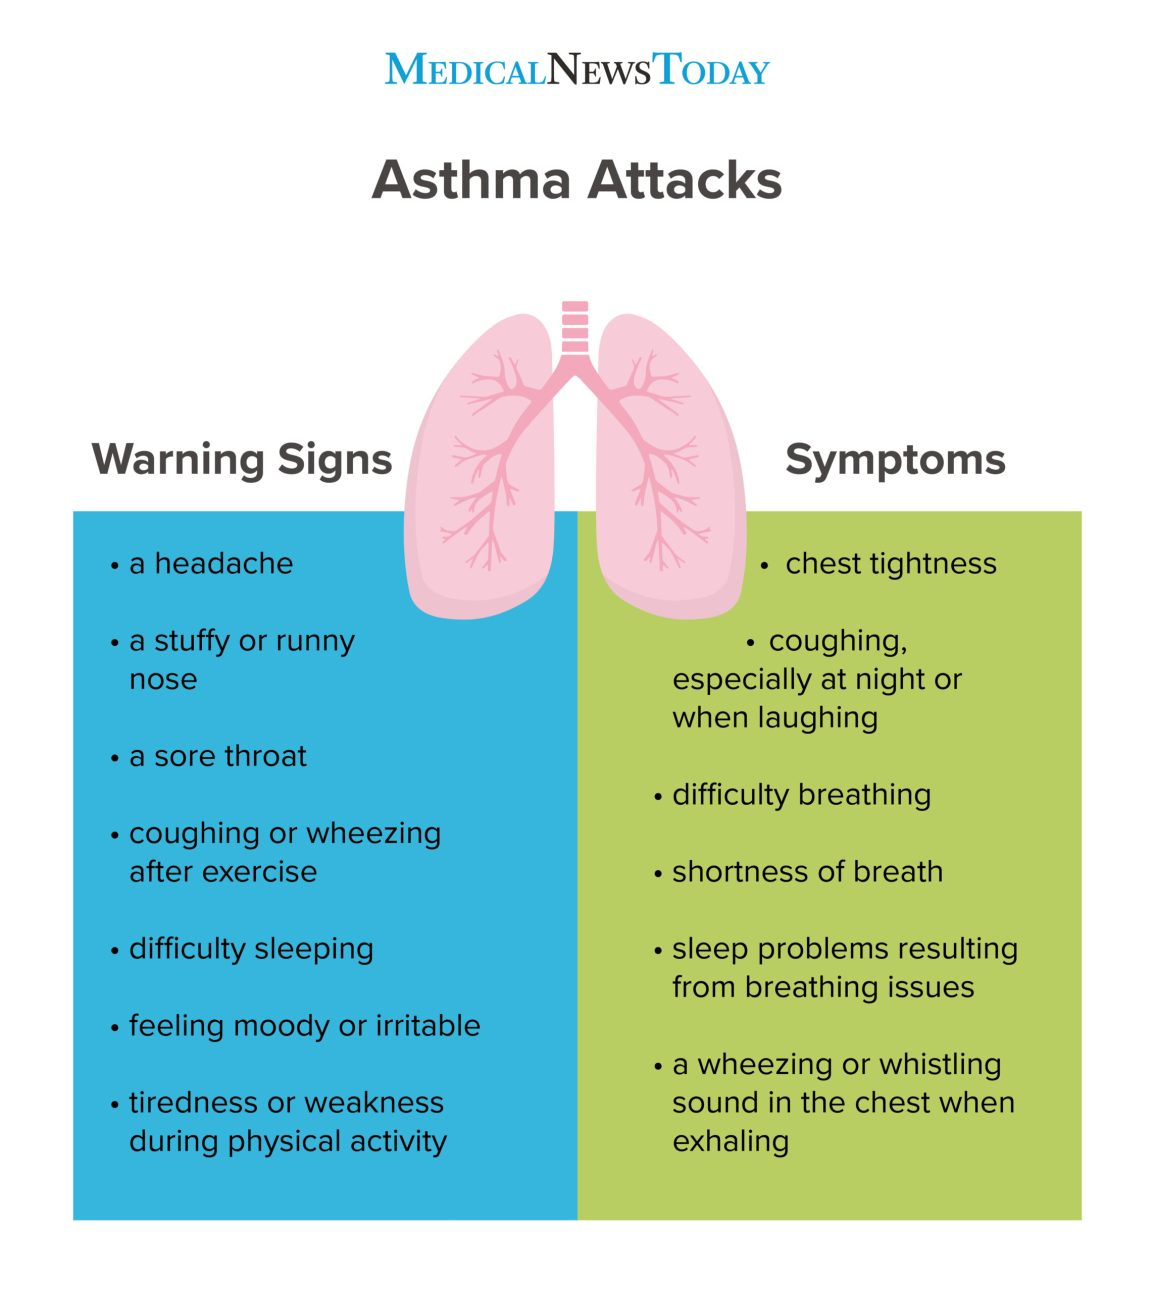 Asthma attacks infographic